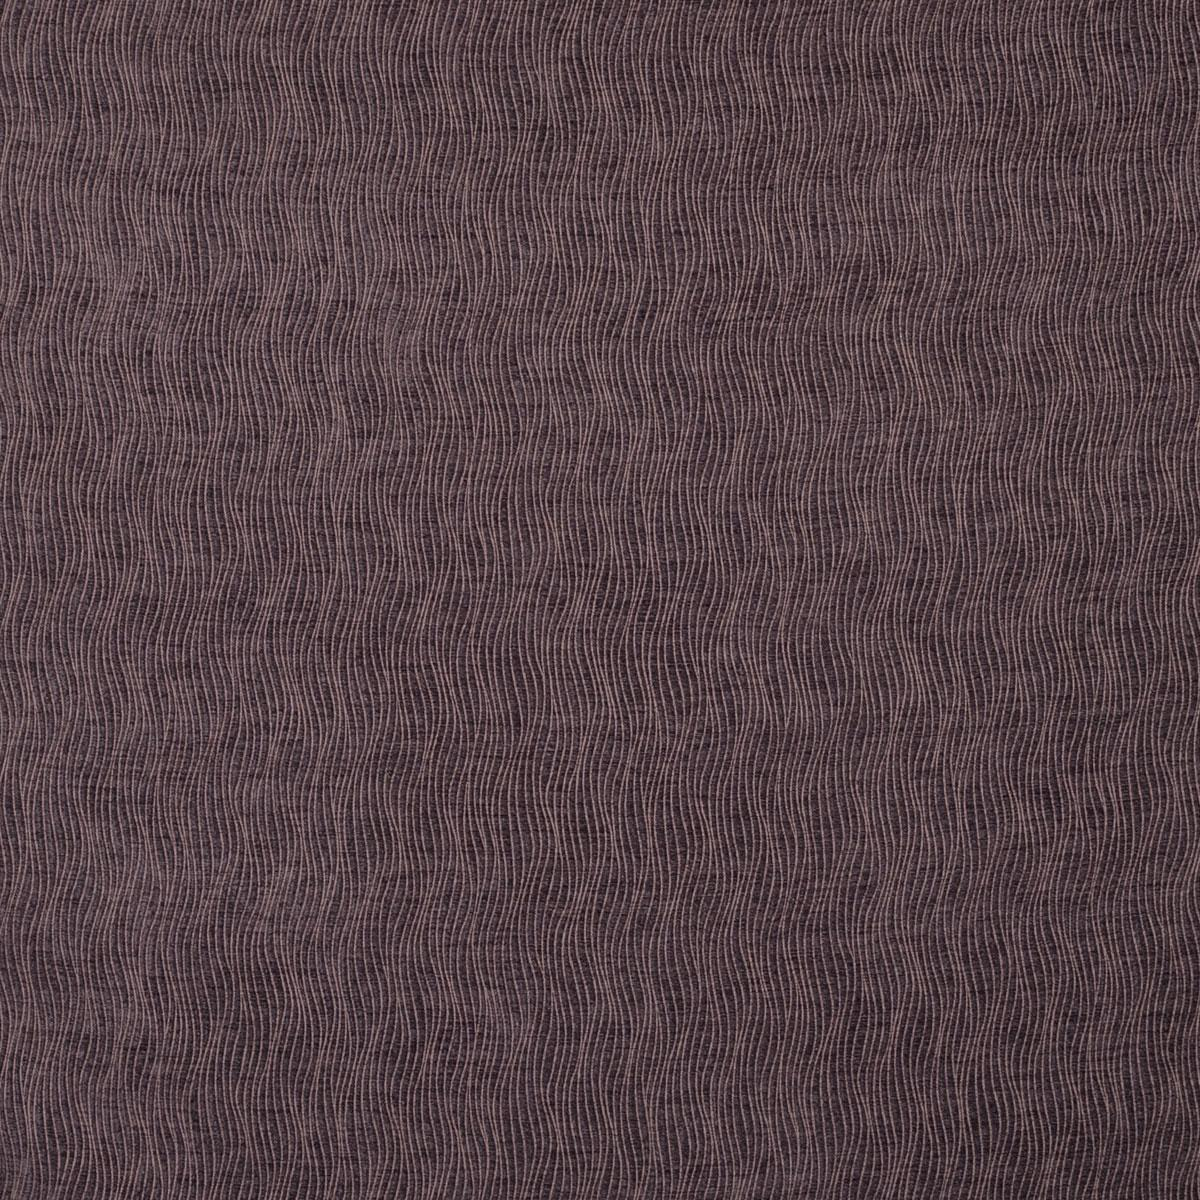 SMD Fabrics Rosario Curtain Fabric Grape Picture